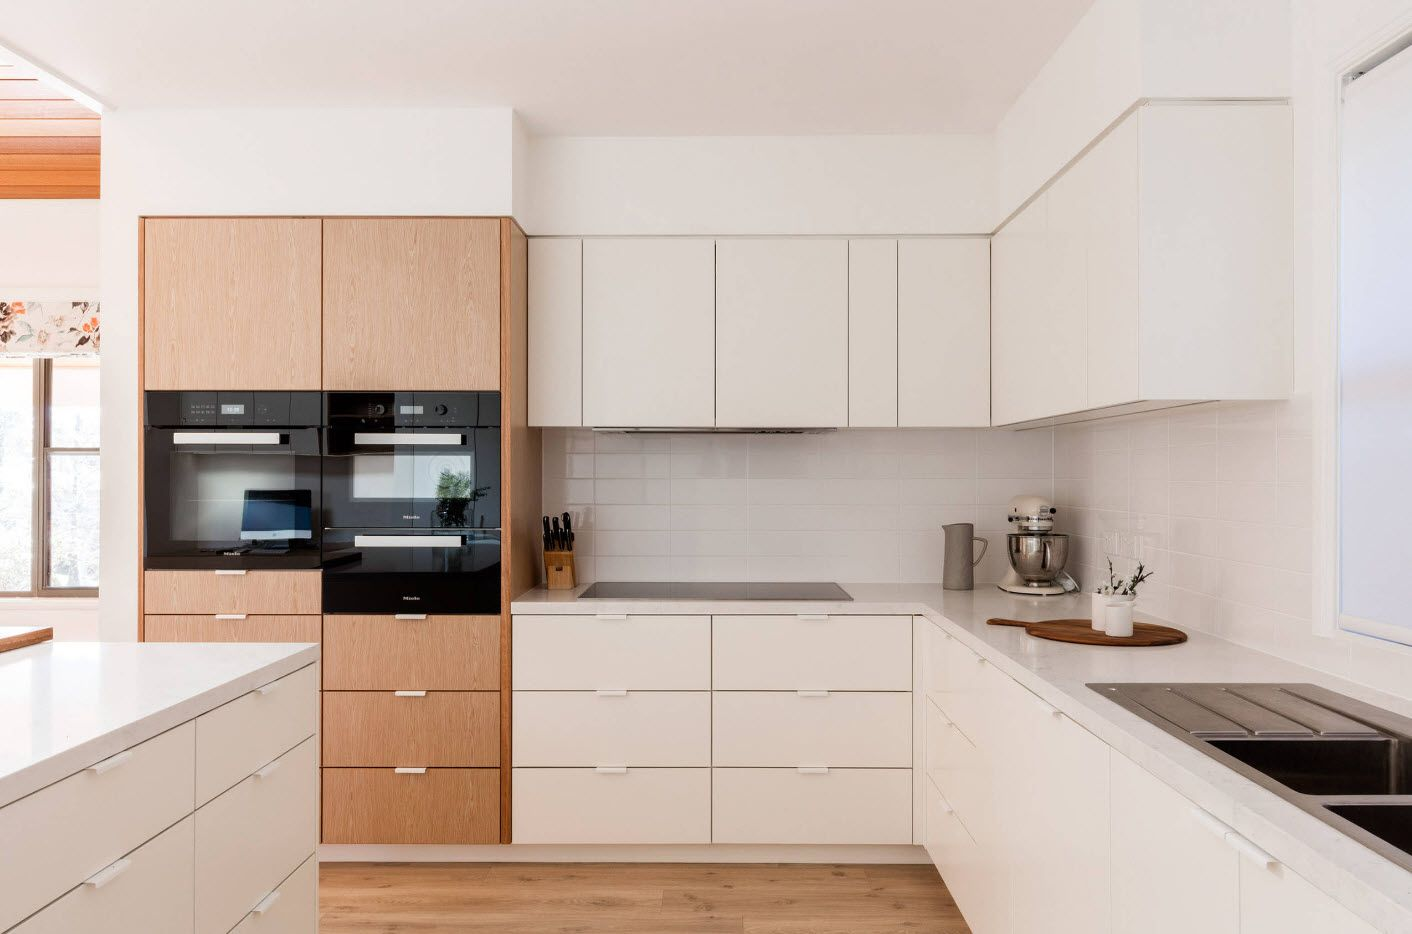 40 Square Feet Kitchen Modern Design Ideas & Layout Types. White wooden specioes to trim the room